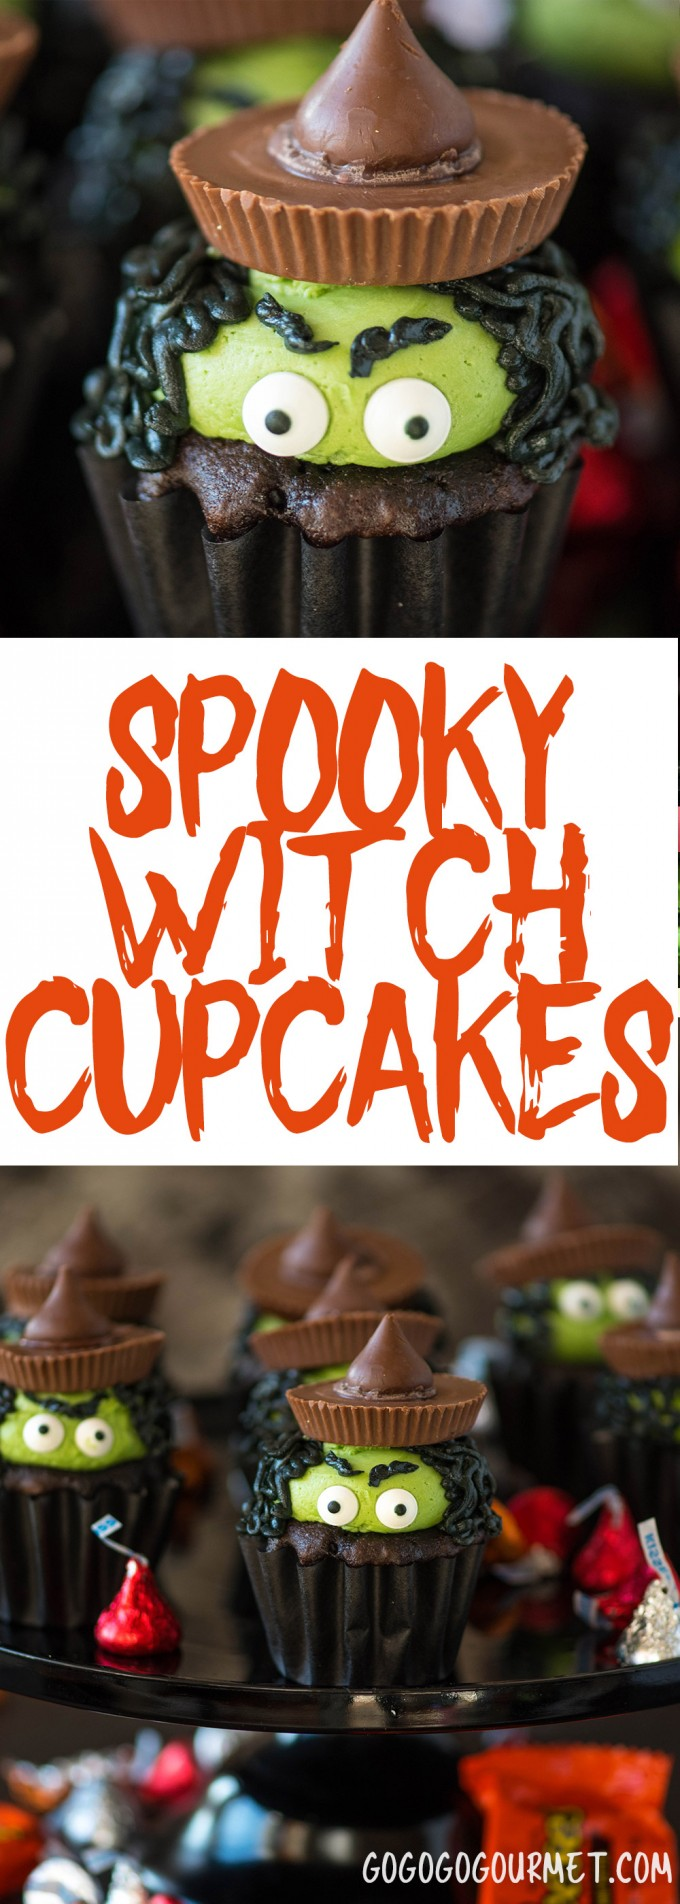 These Witch Cupcakes are an adorable Halloween cupcake idea! Super easy to do with candy eyes and favorite Halloween treats!